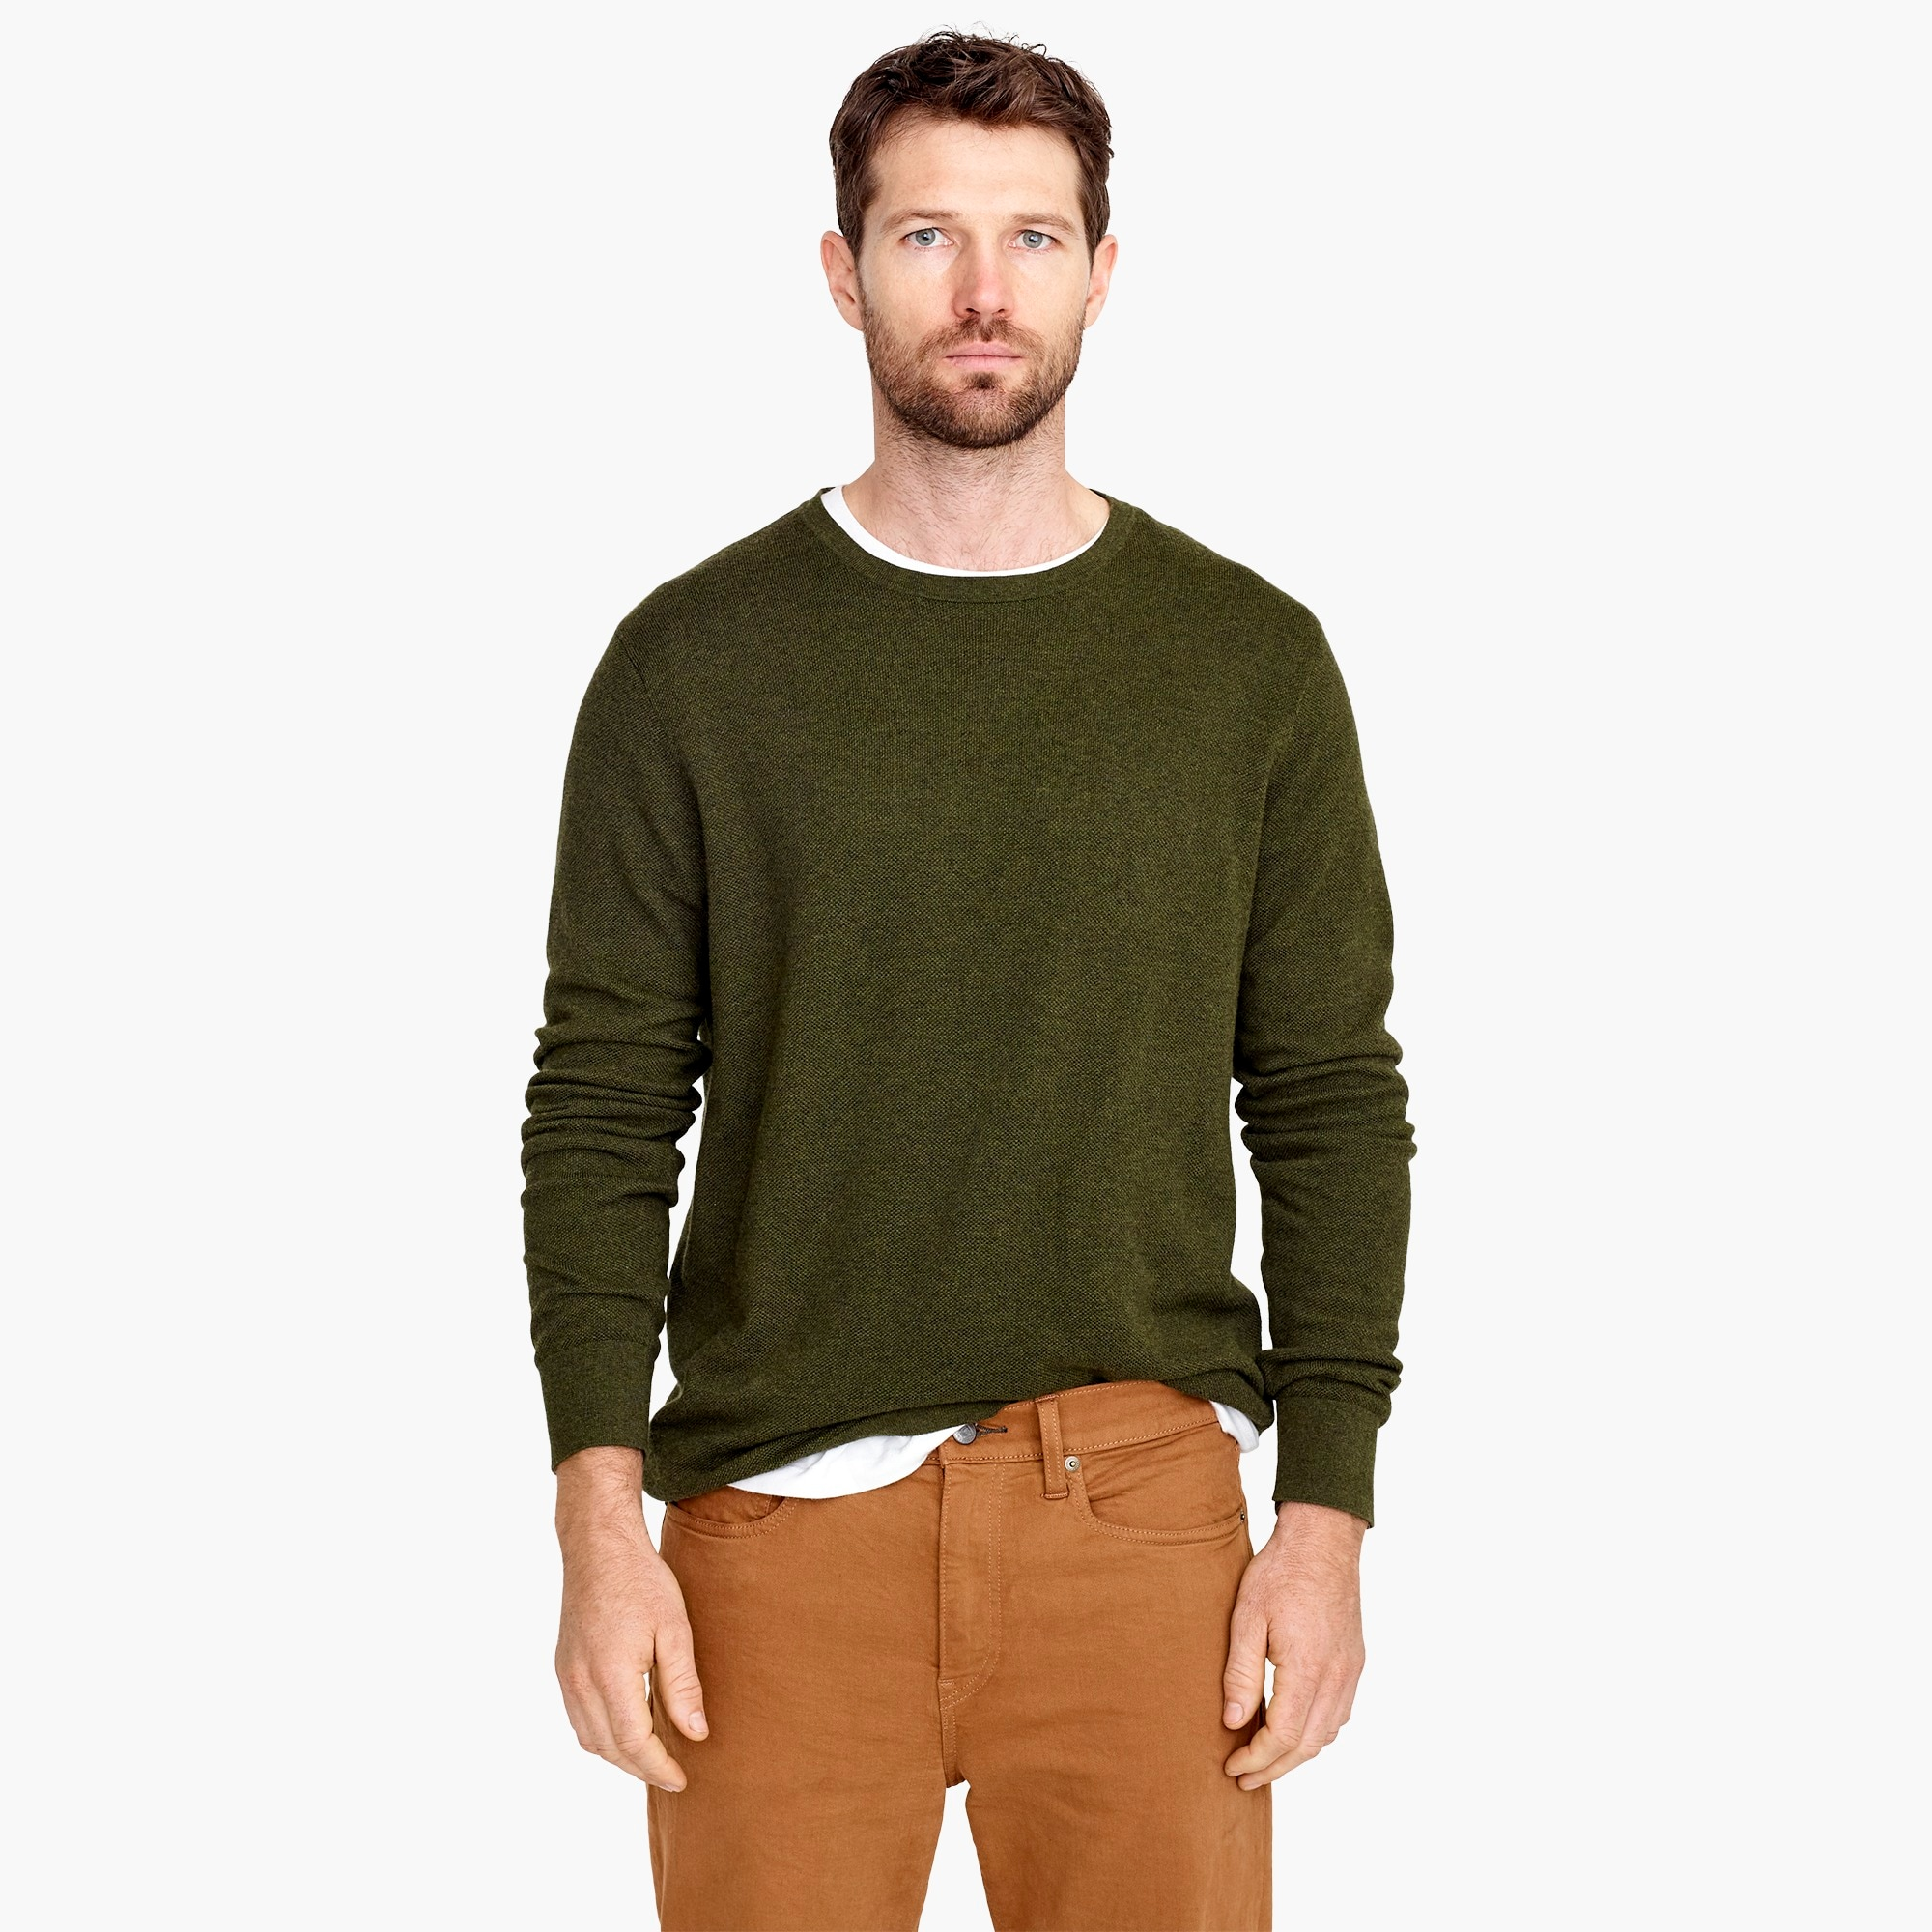 Cotton-cashmere piqué crewneck sweater men sweaters c